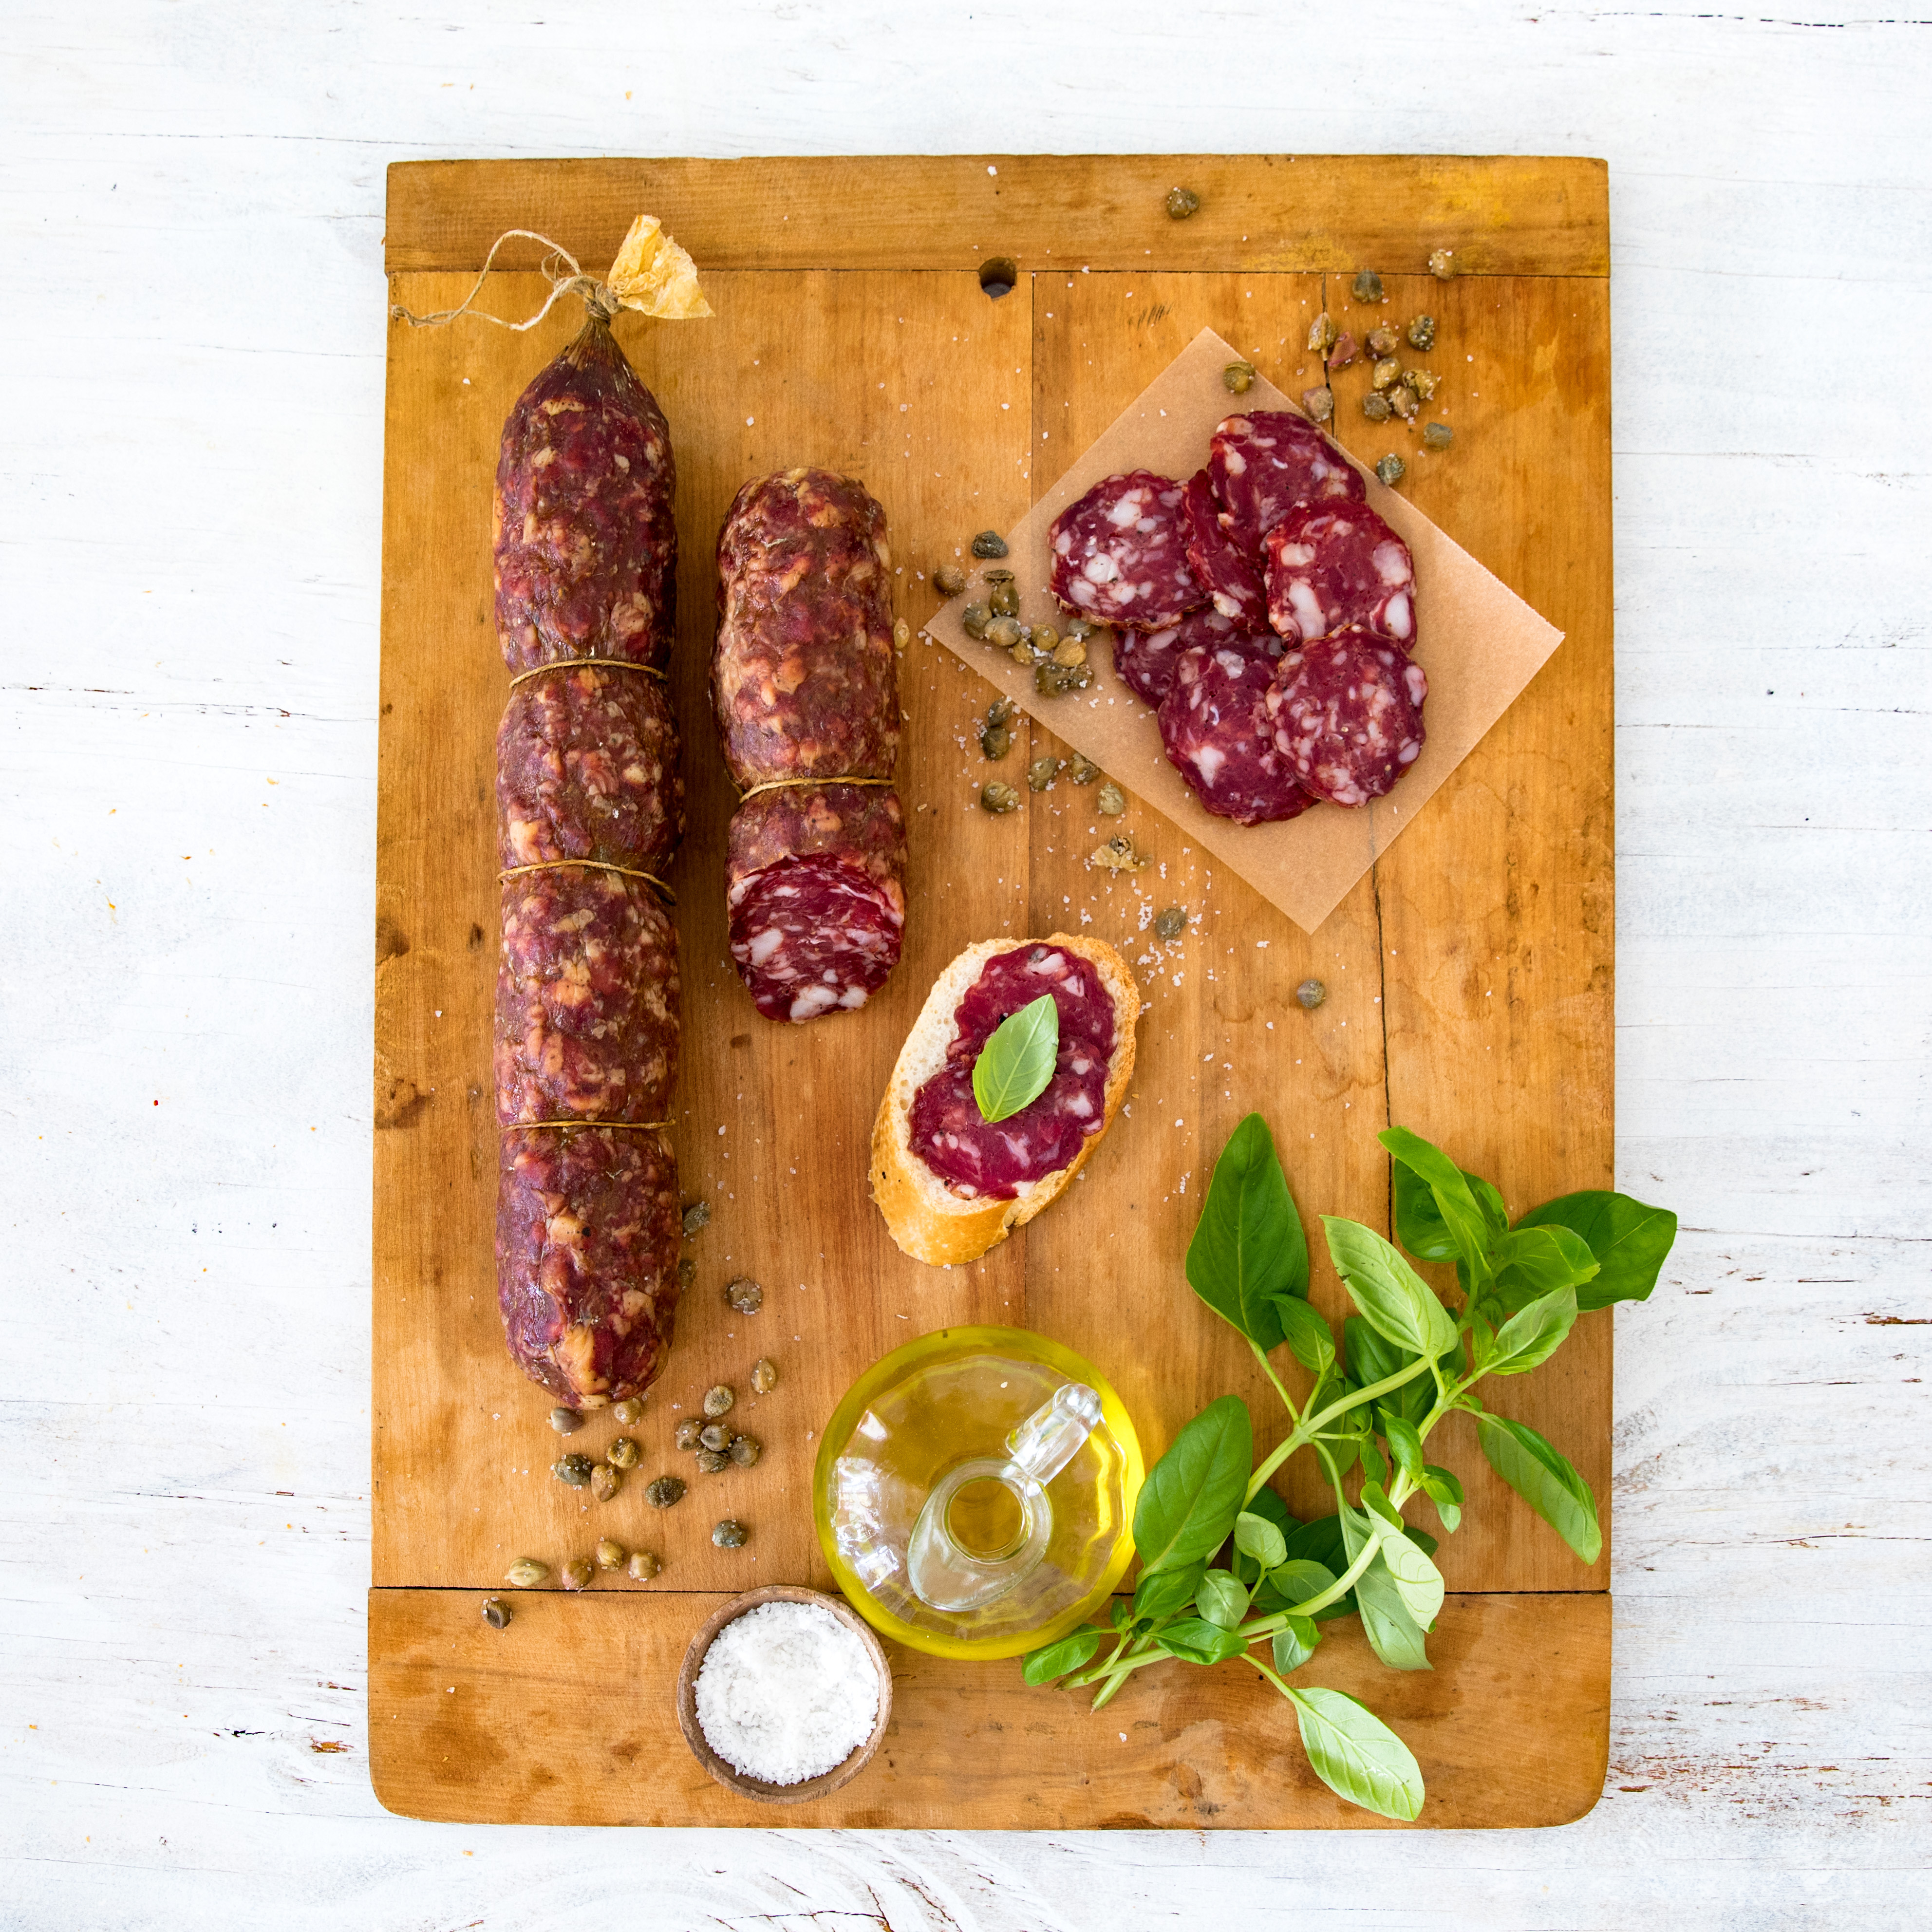 Contact Us to purchase salami